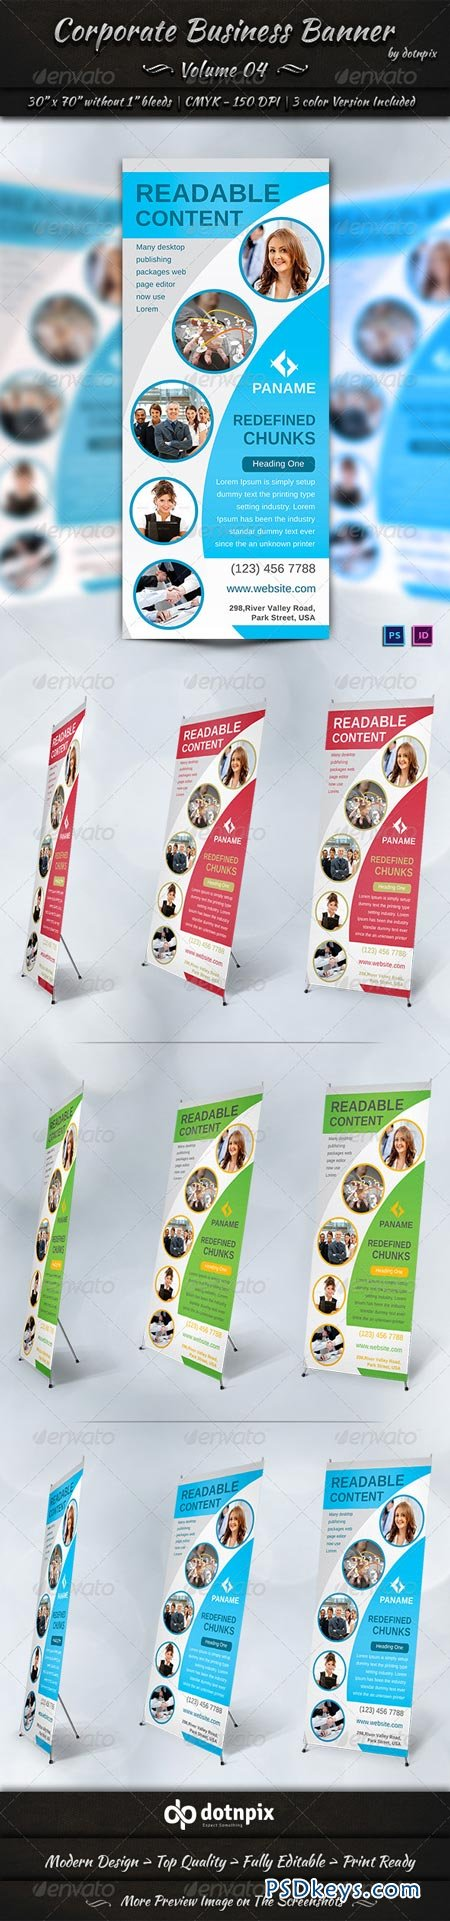 Corporate Business Banner Volume 4 6899016